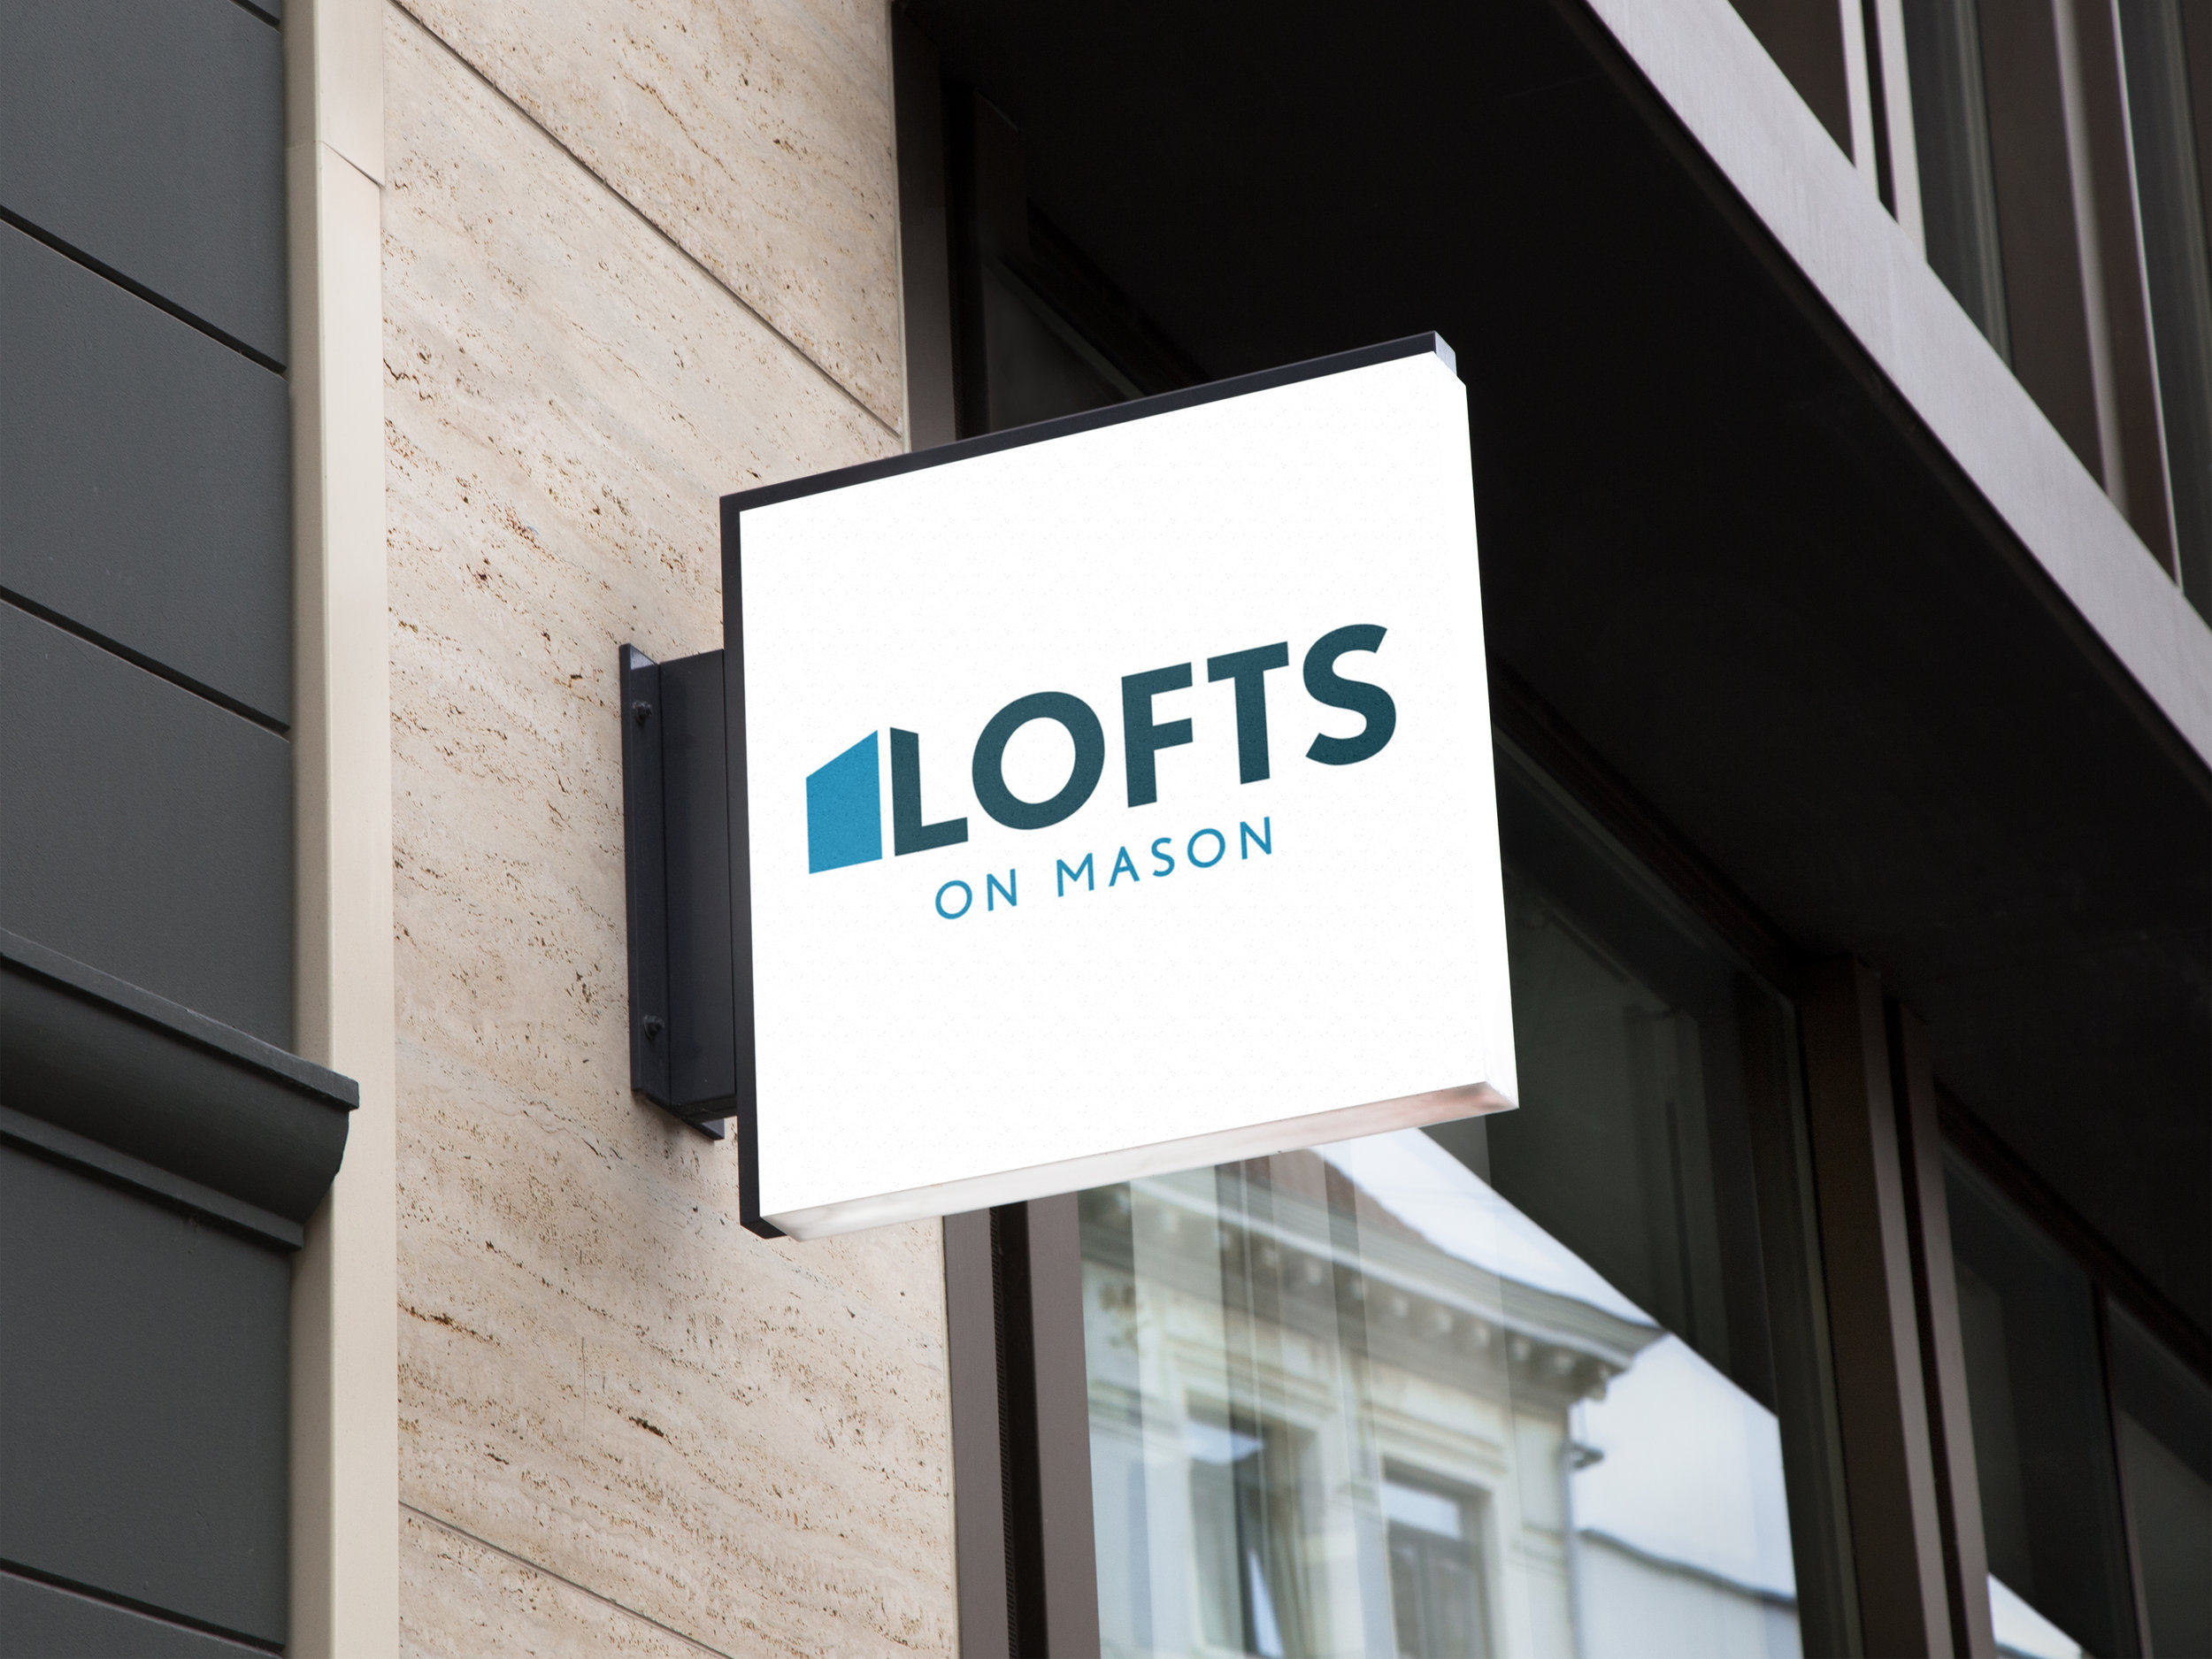 Lofts On Mason Signage